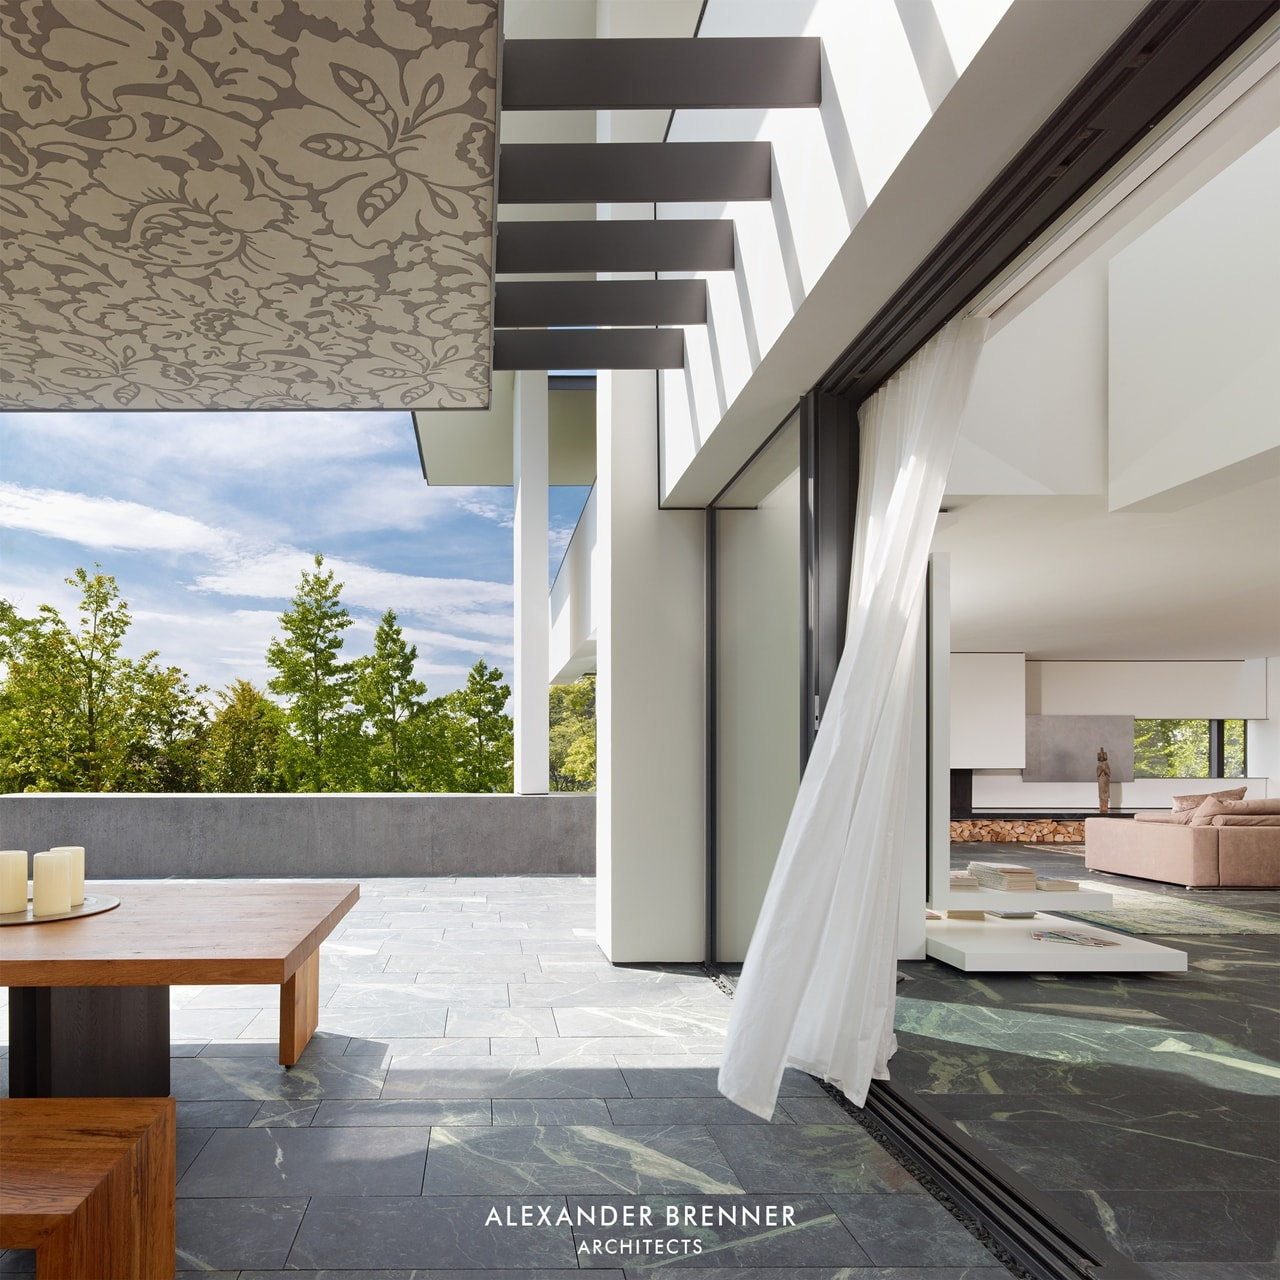 Modern Villa Design - Incredible SU House by Alexander Brenner featured on Architecture Beast 06